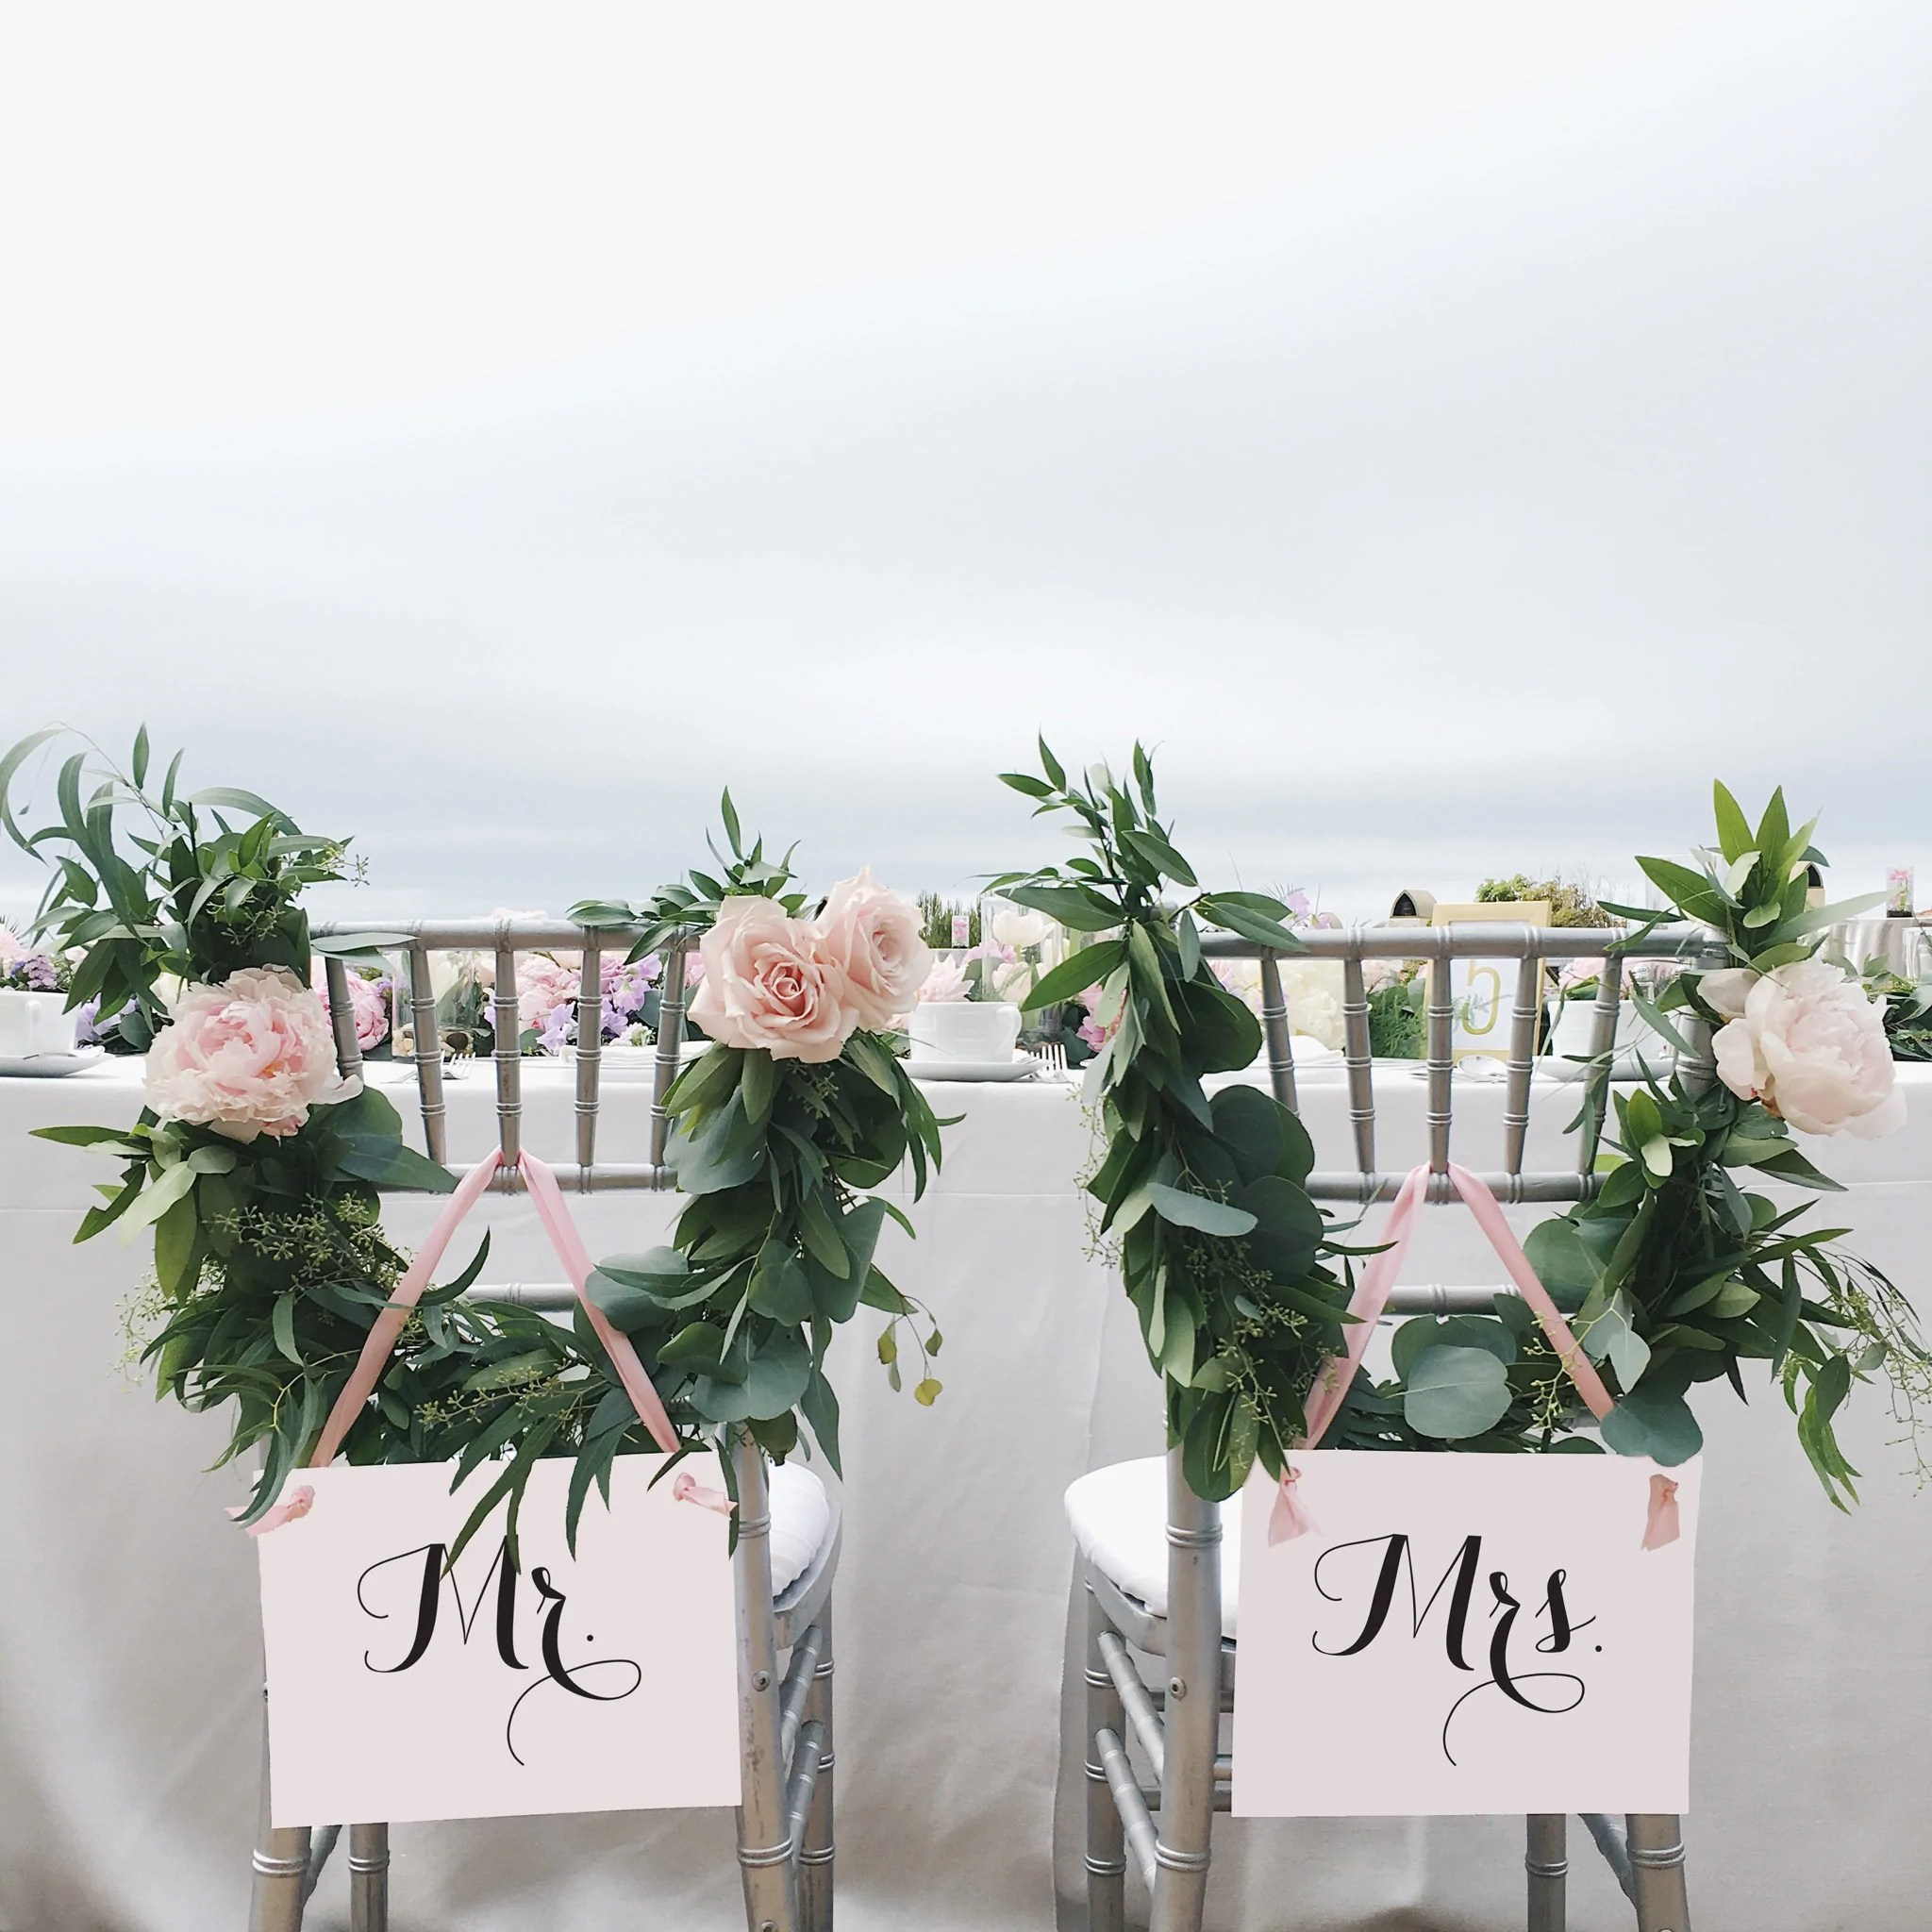 mr and mrs chair signs sofa slipcovers wedding for bride groom black blush pink ritzy rose